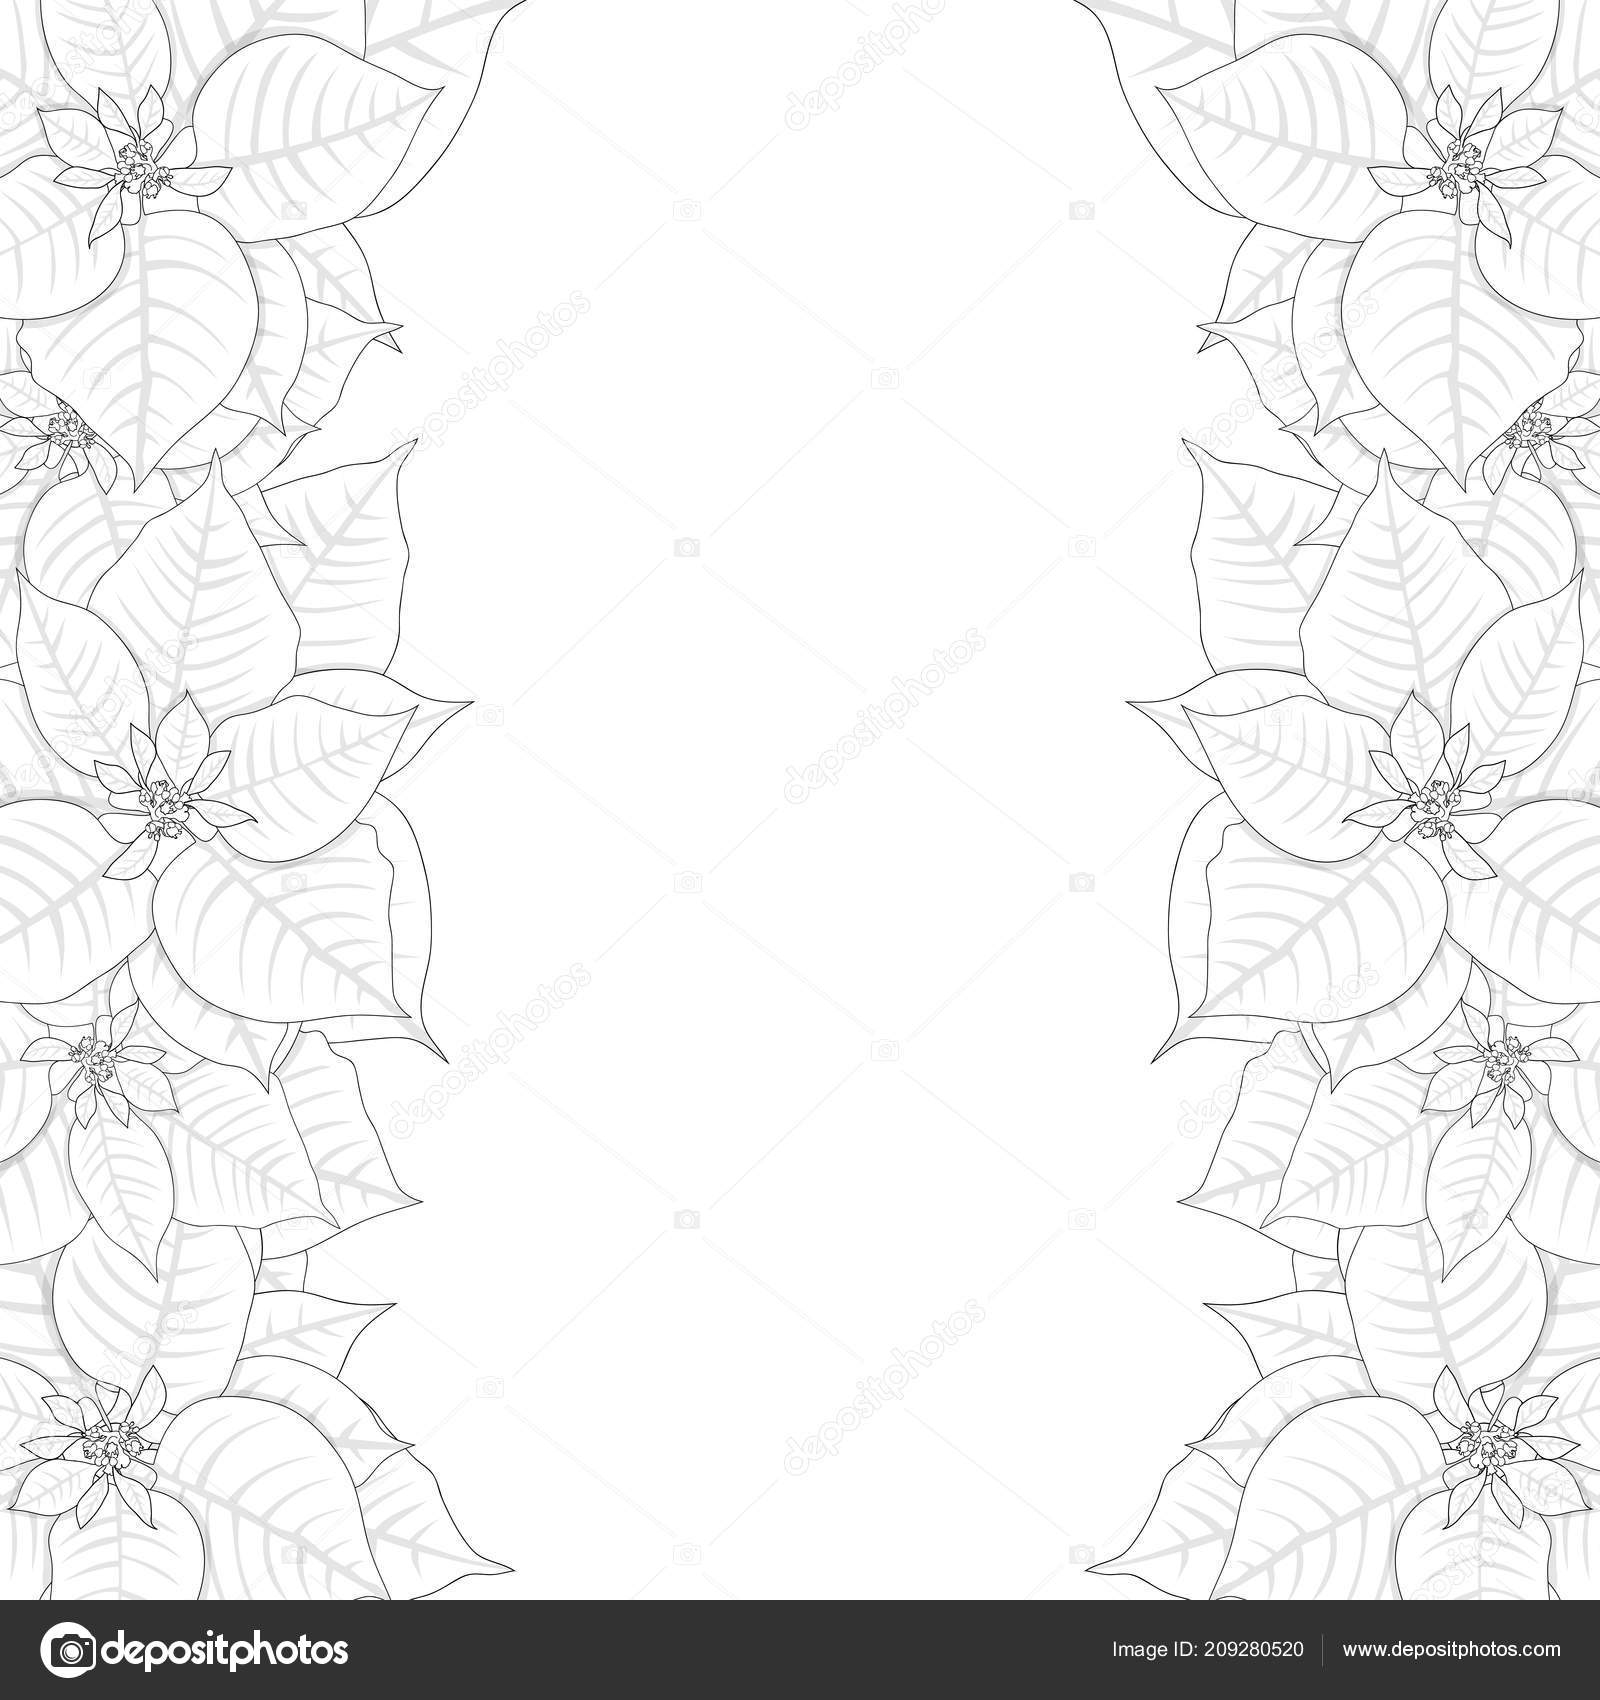 Poinsettia Outline Border Isolated White Background Vector ...